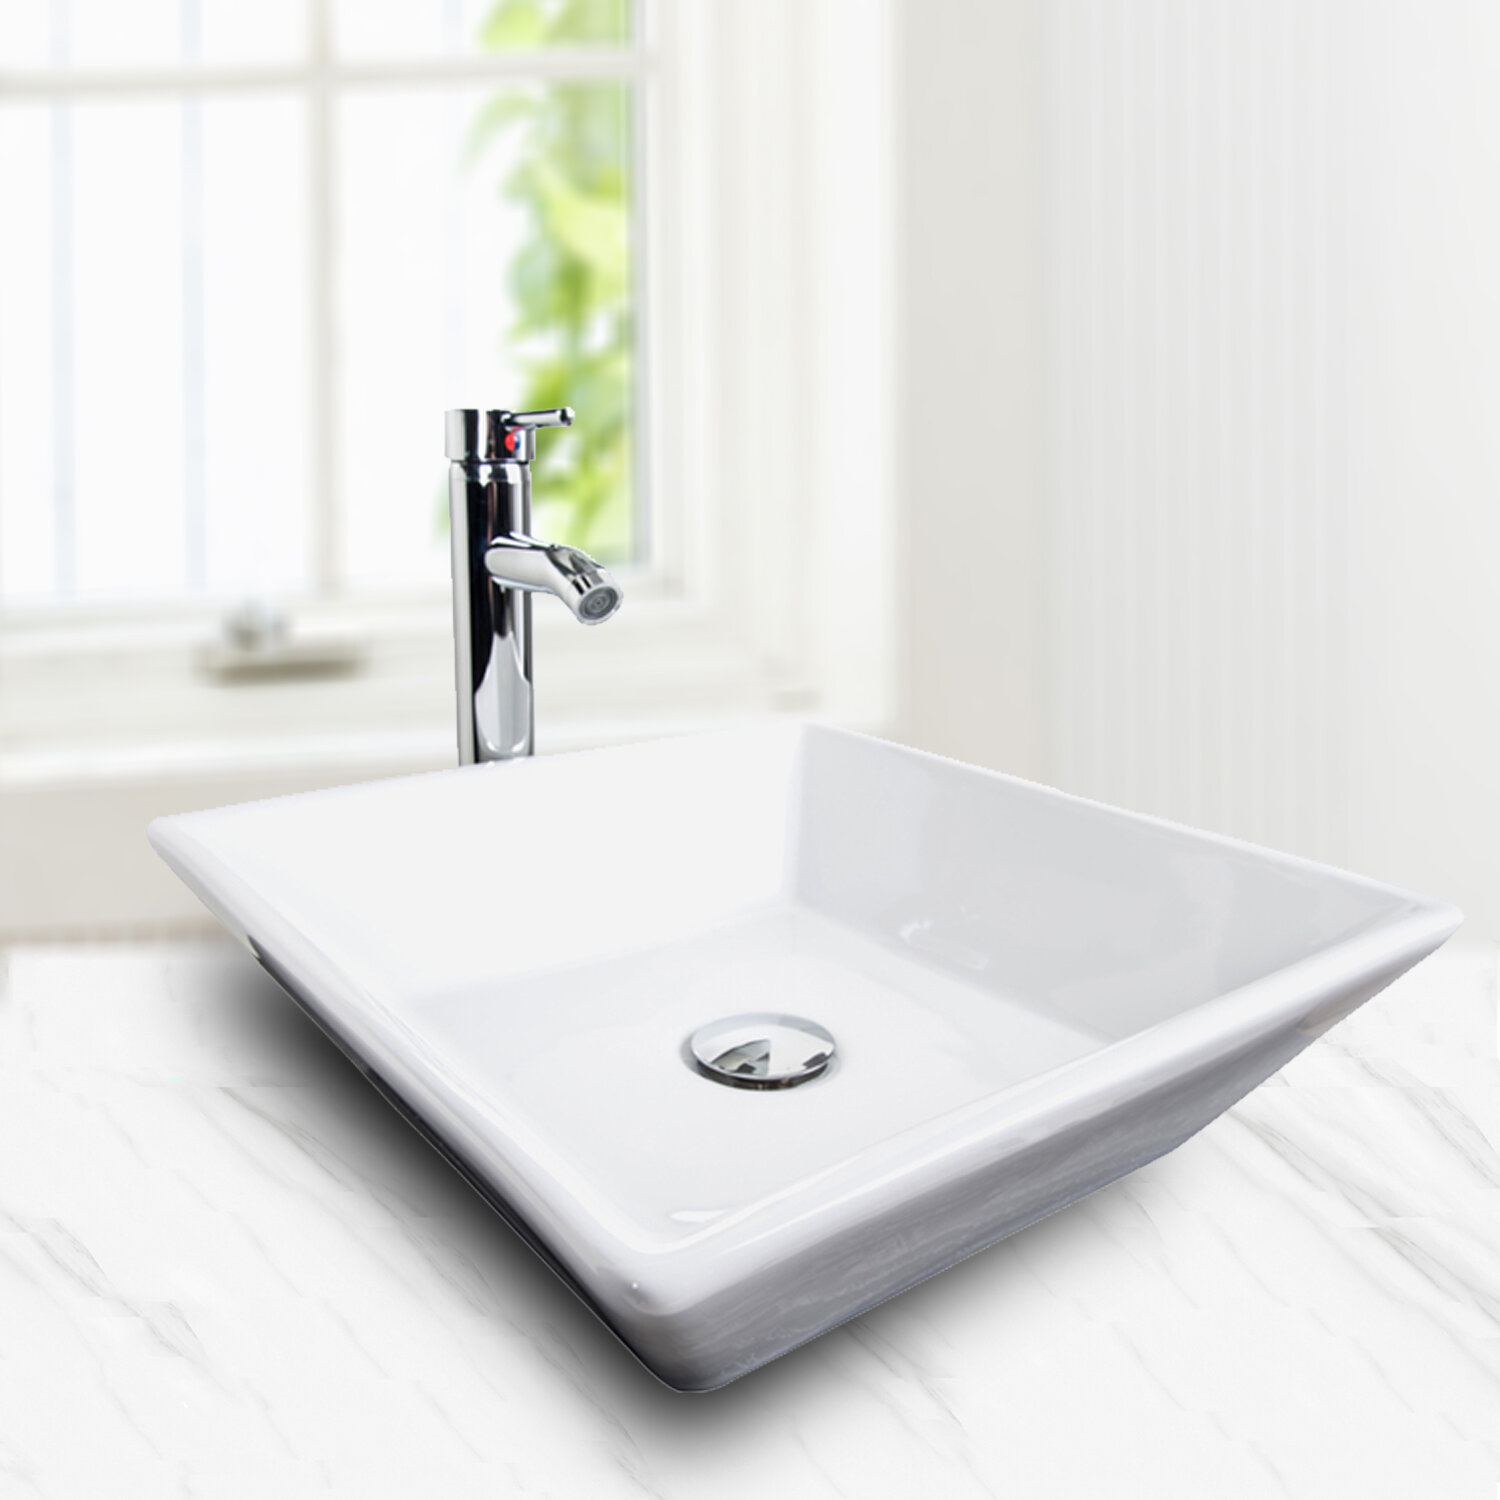 Elecwish Ceramic Square Vessel Bathroom Sink With Faucet Wayfair